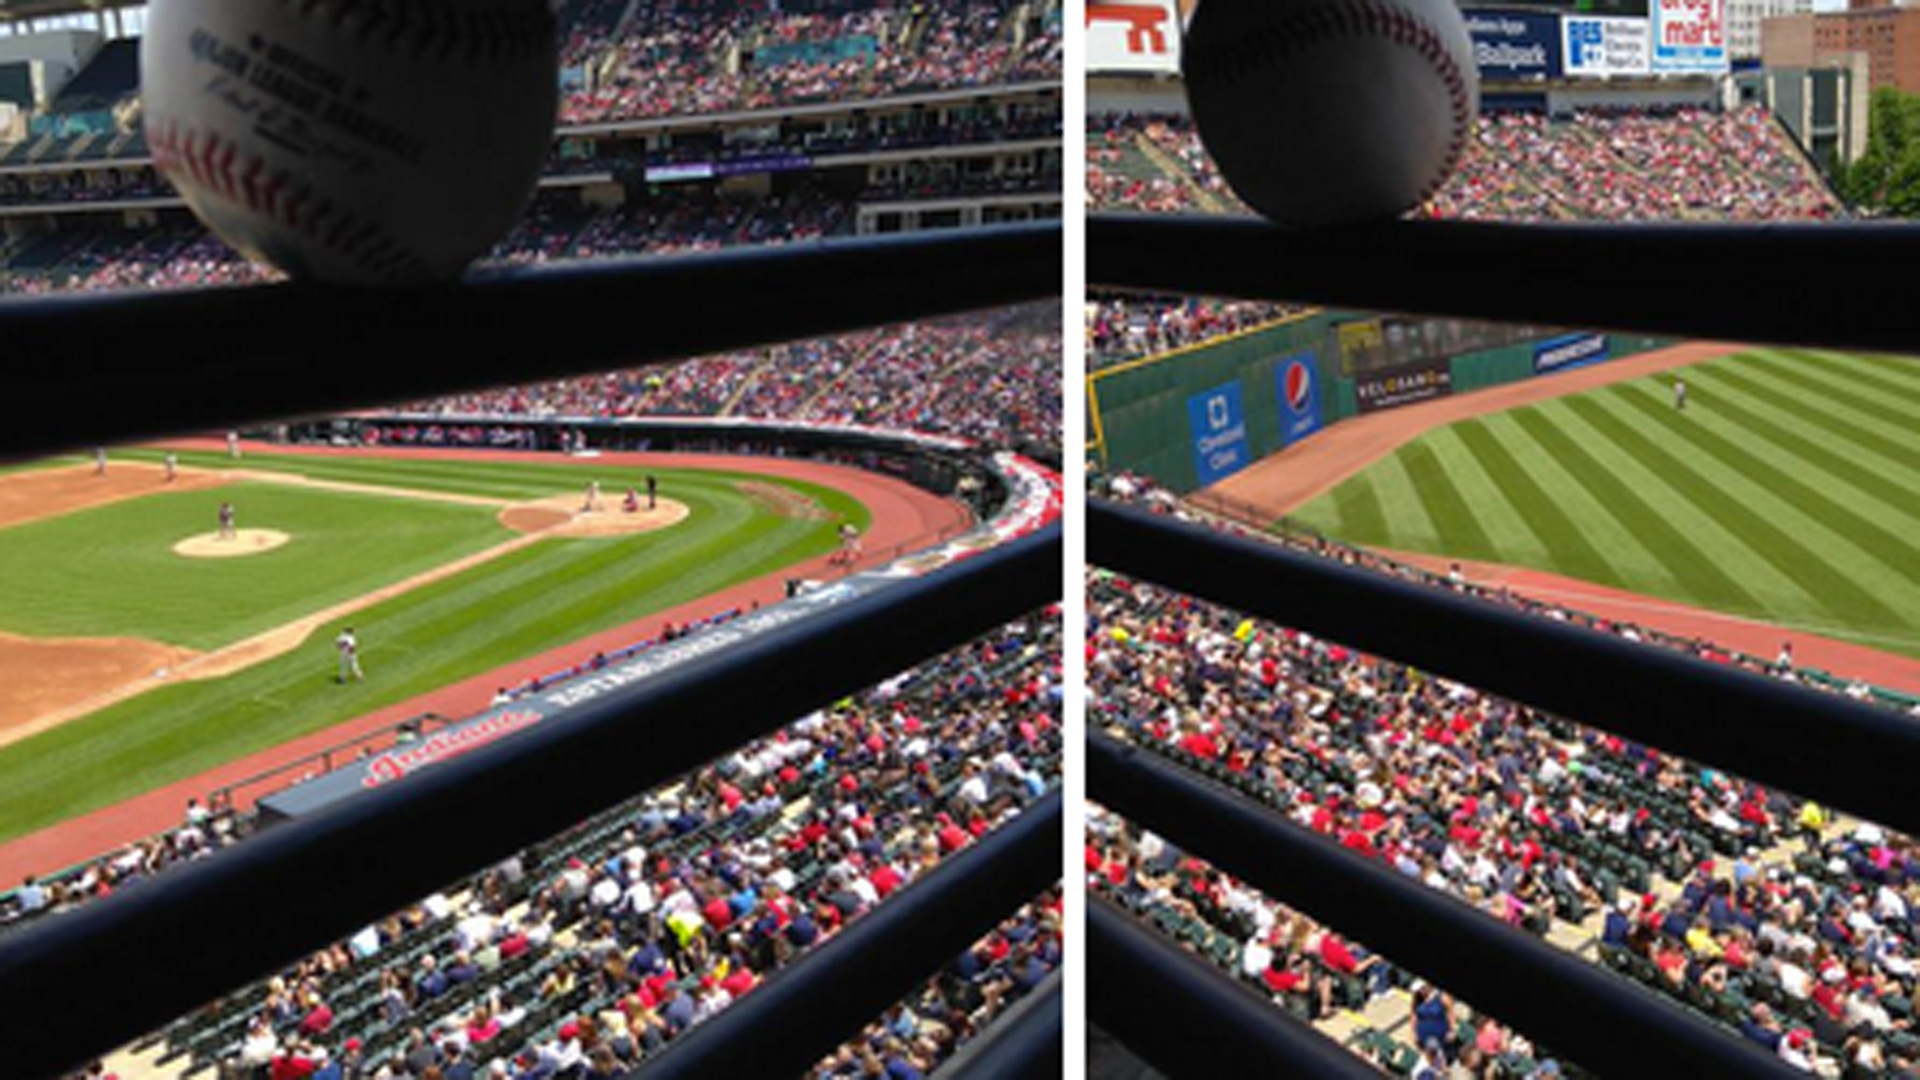 Michael Brantley's foul ball stuck in suite railing